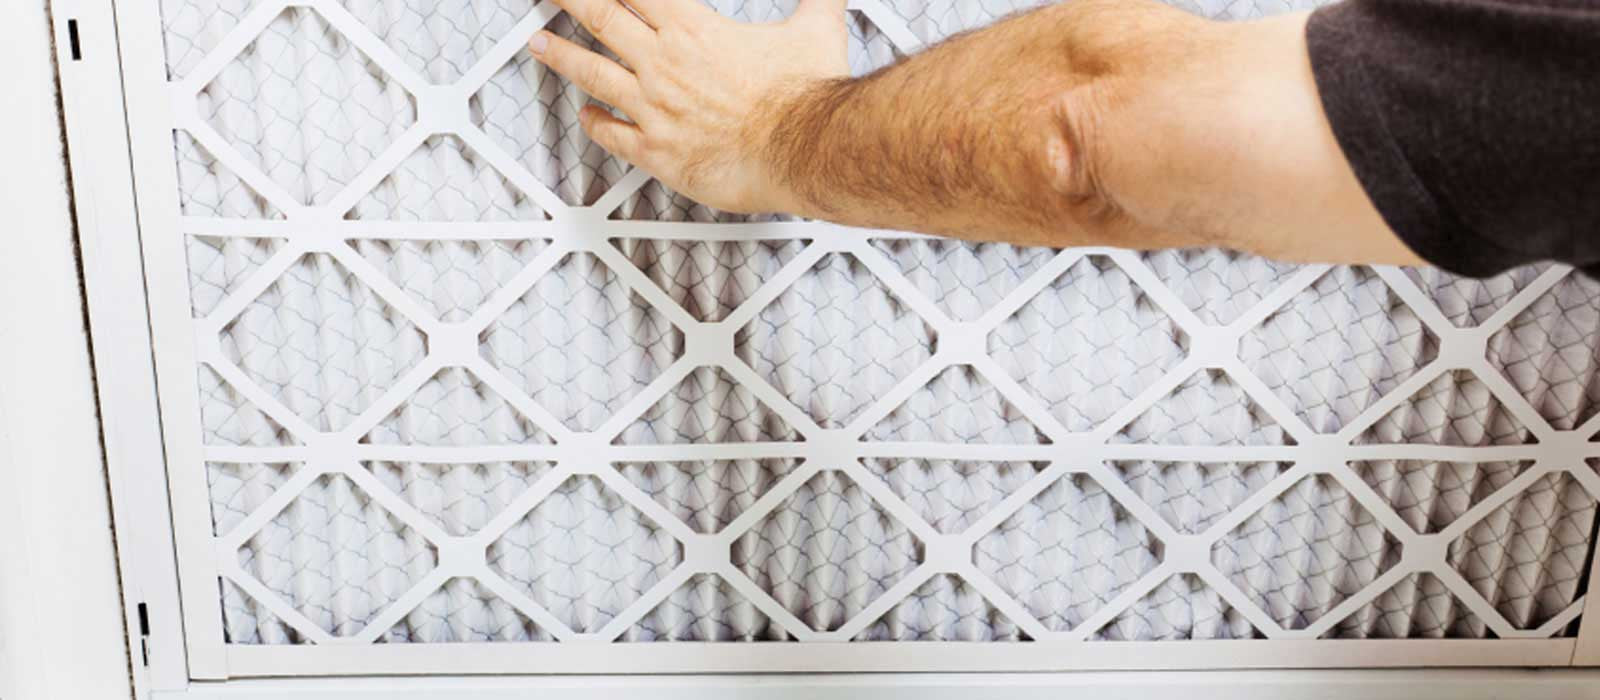 When was the last time you replaced your filter?